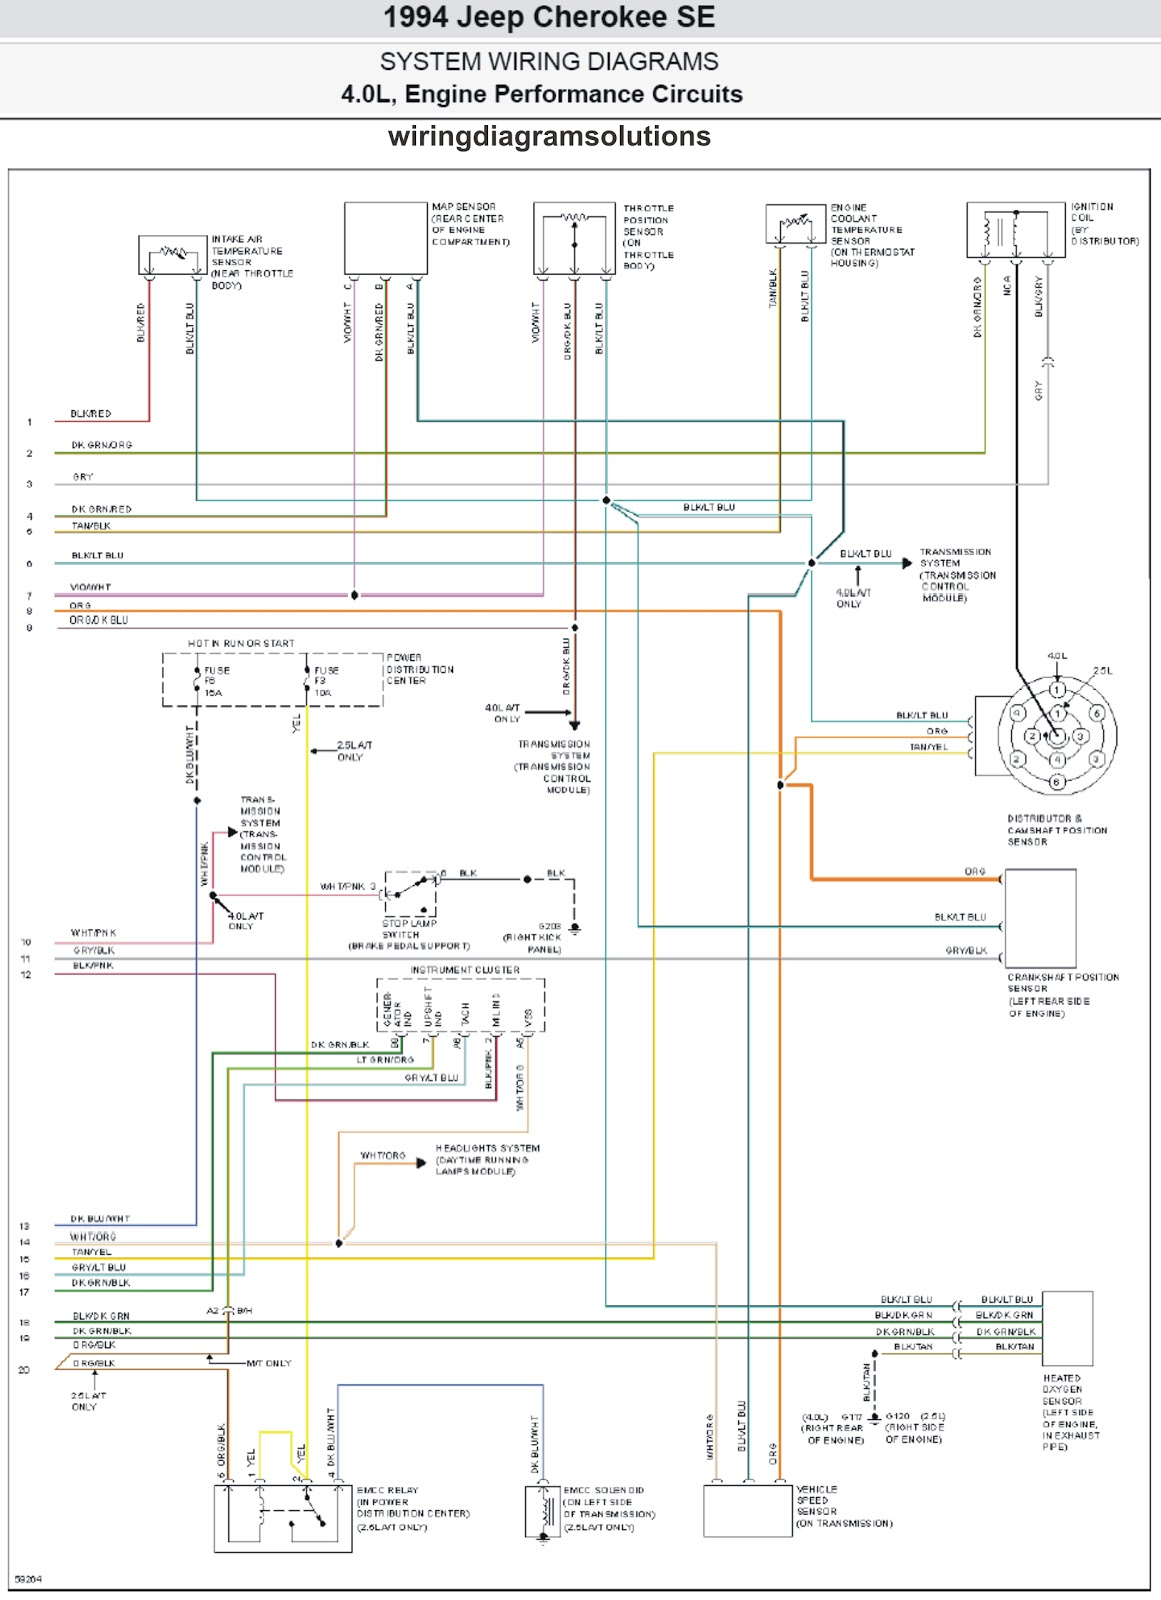 DIAGRAM] 2001 Jeep Cherokee Wiring Diagram FULL Version HD Quality Wiring  Diagram - ROCKCYCLEDIAGRAMS.BENEDICTE-BARNIER.FRRead Diagram FREE